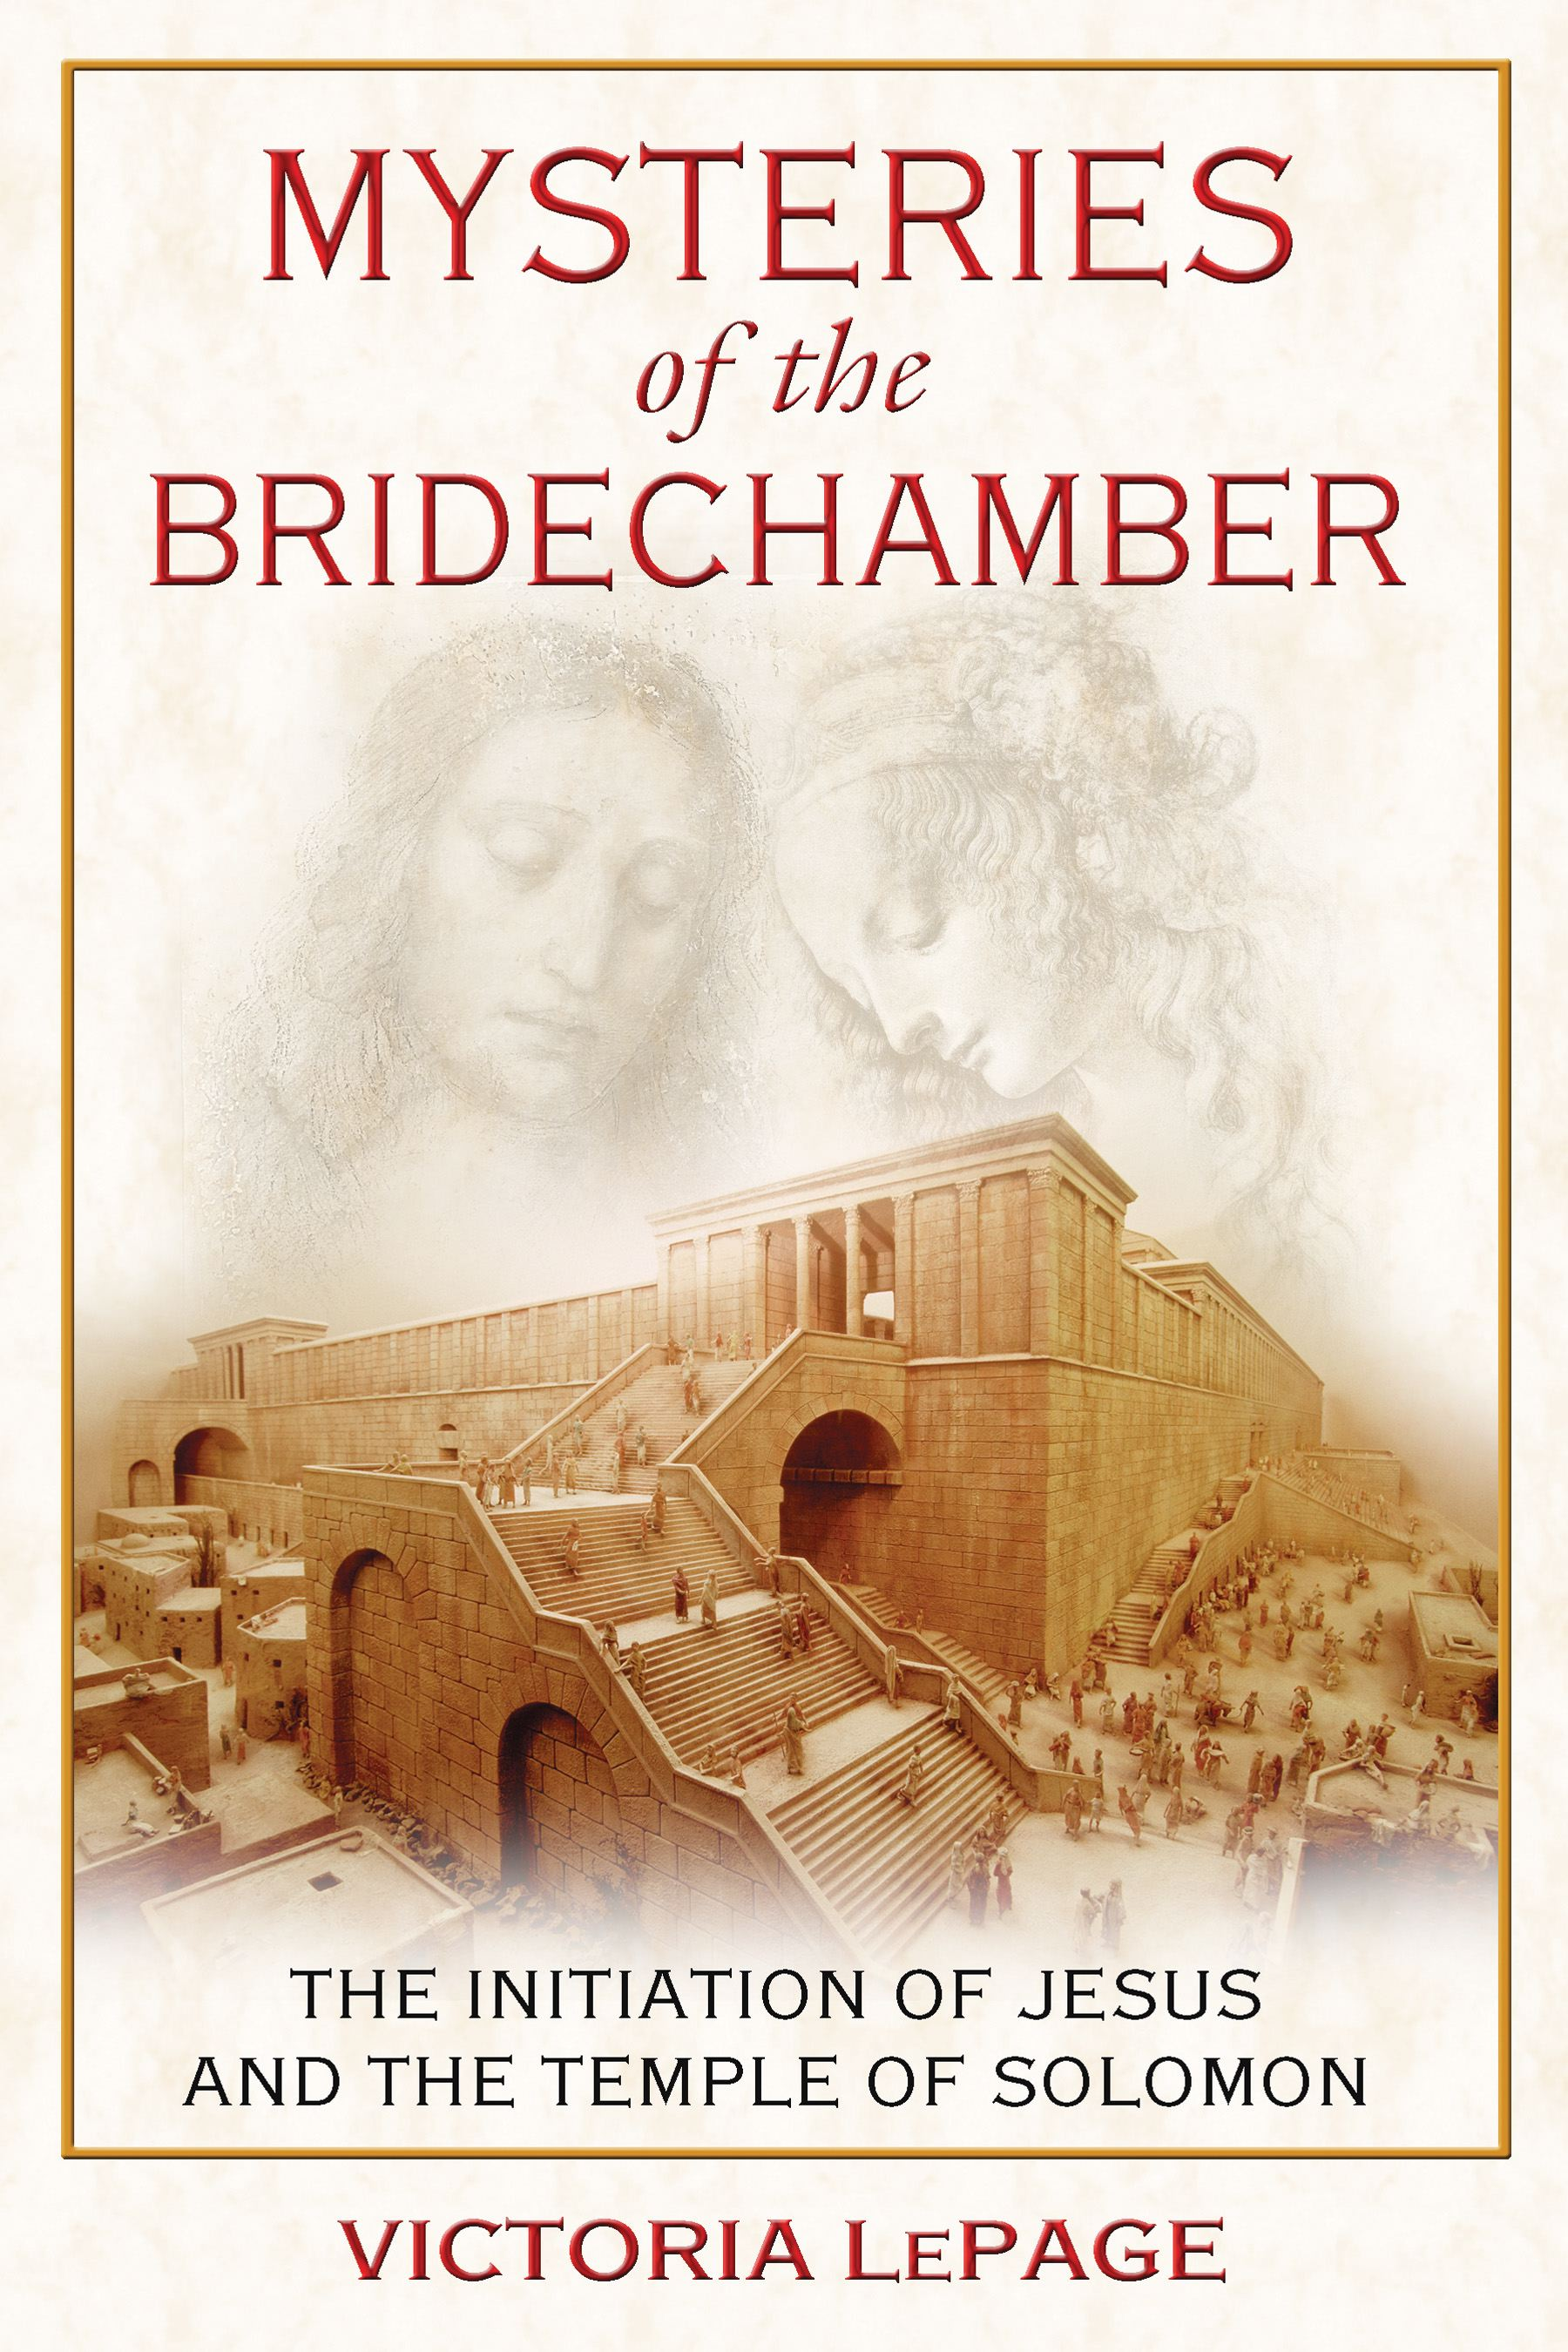 Mysteries-of-the-bridechamber-9781594771934_hr